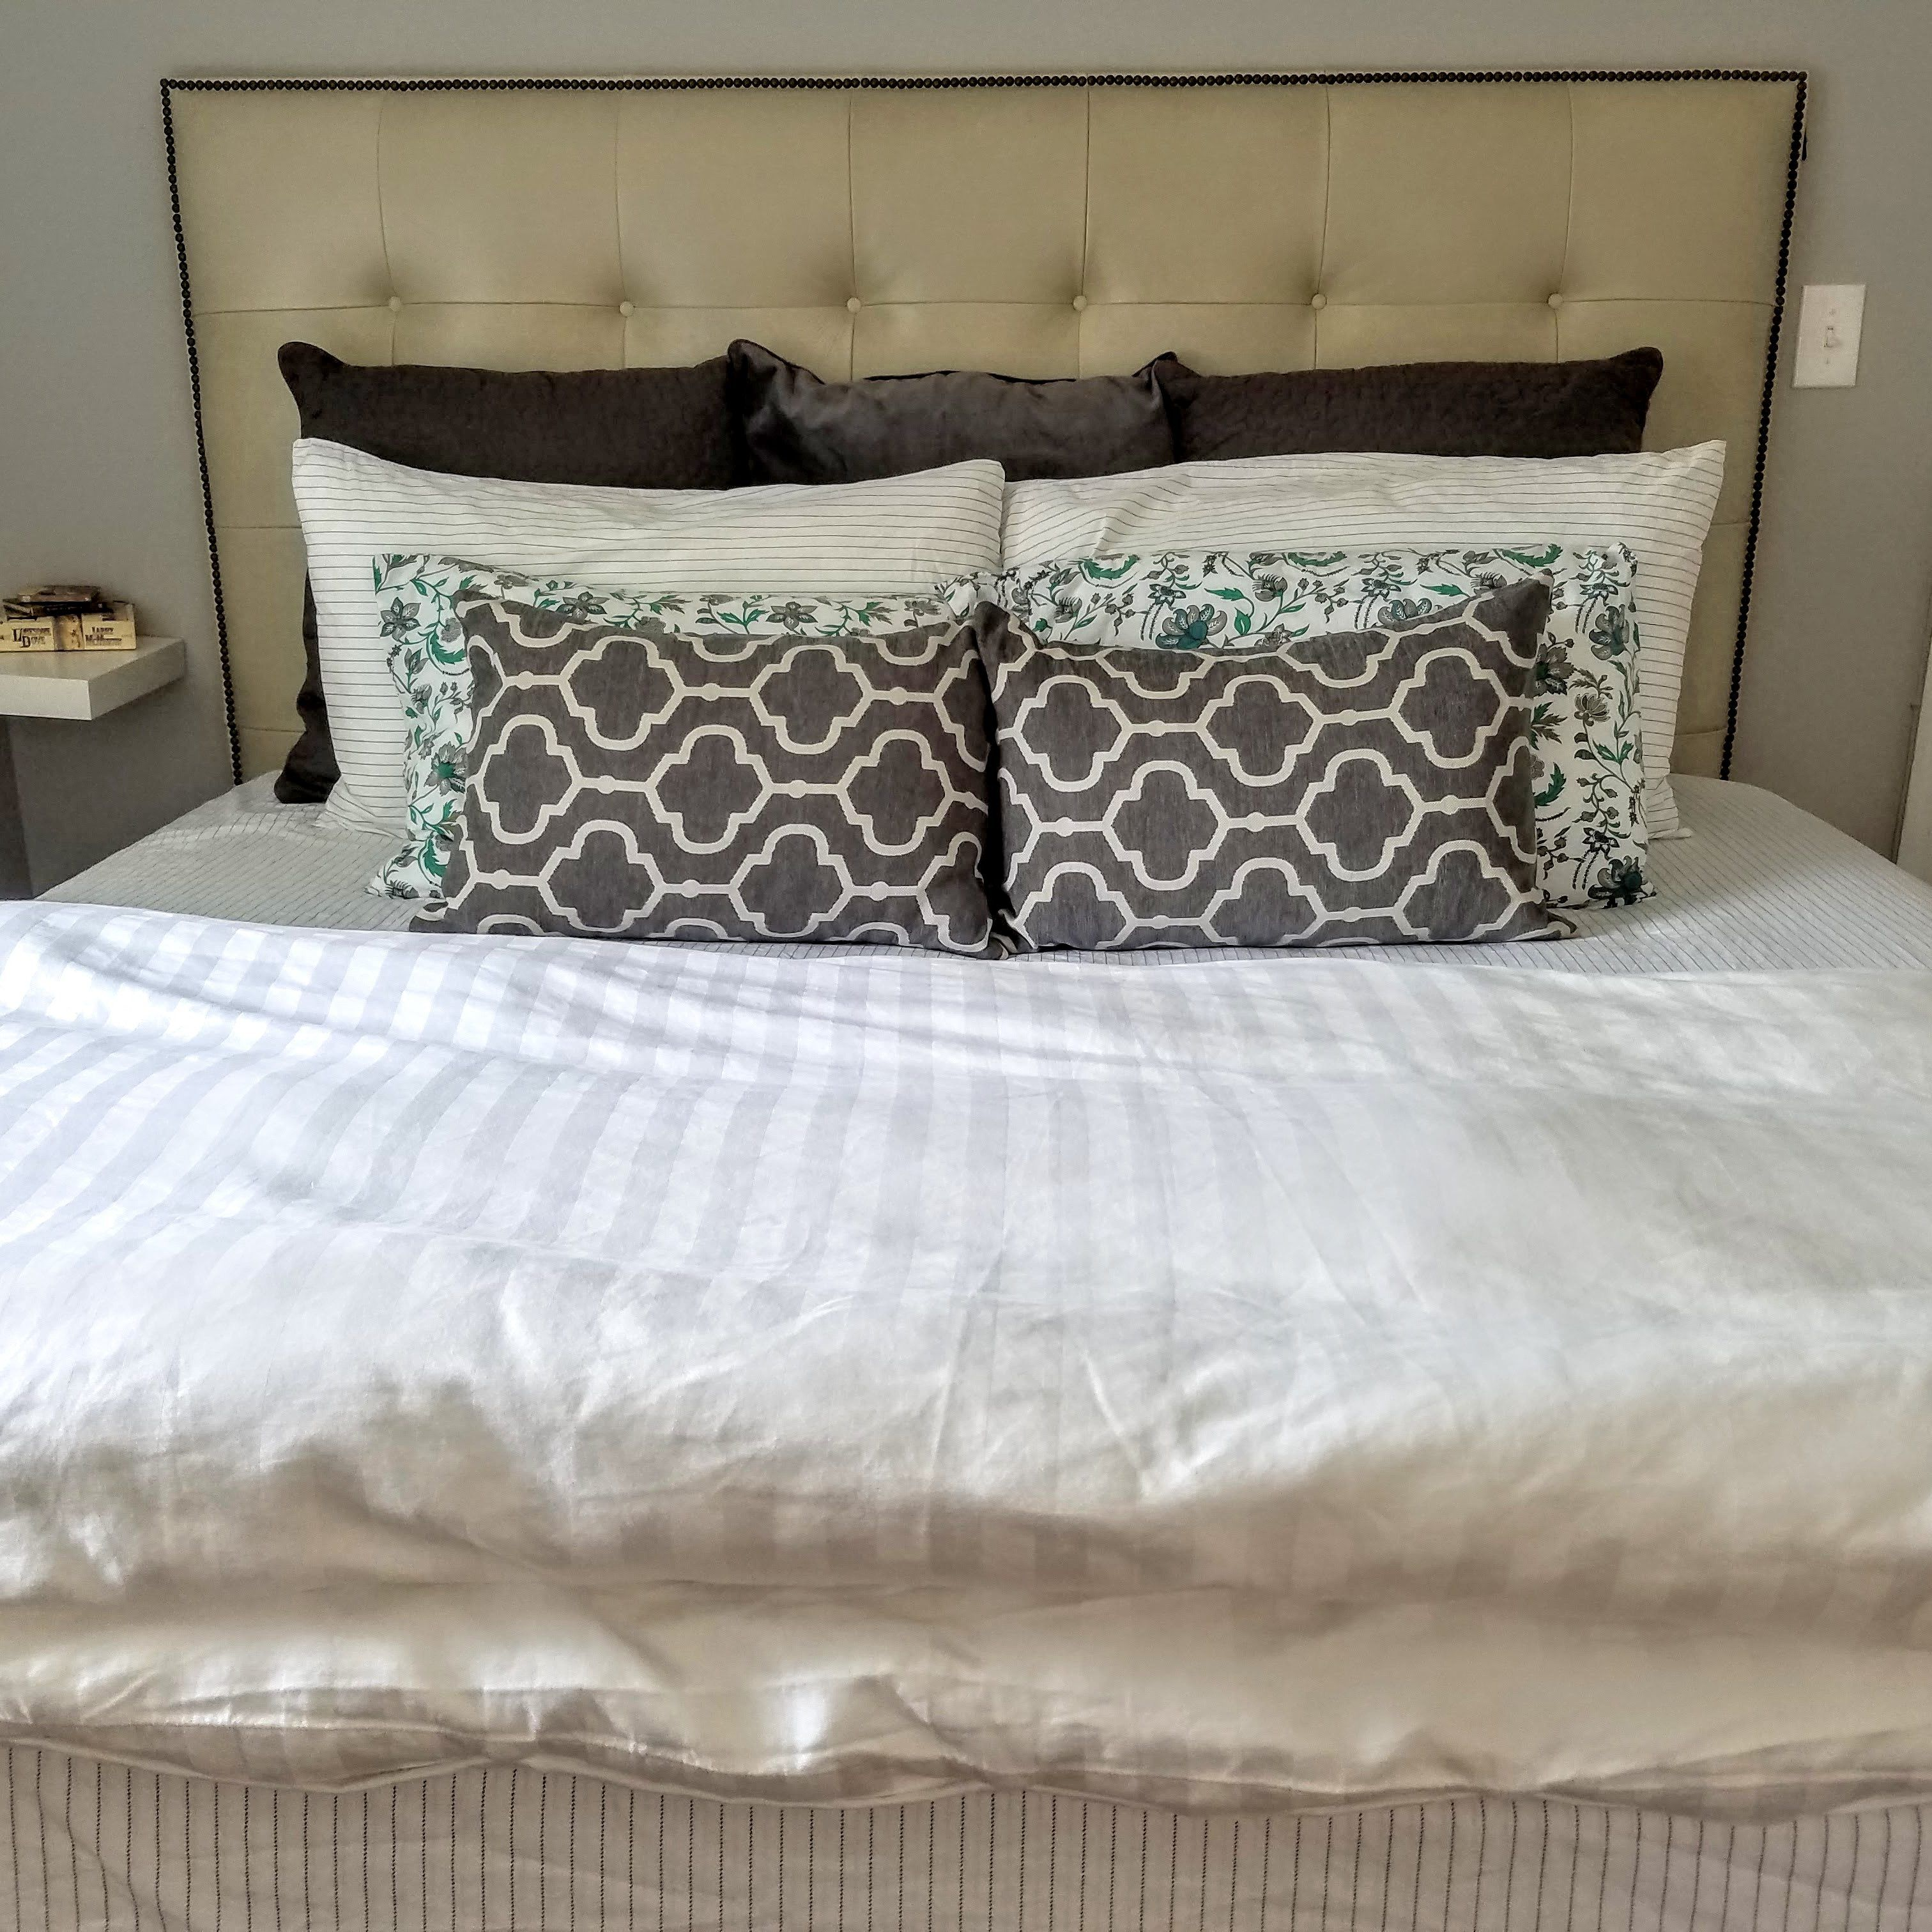 short term rental property service Bed pillows, Home